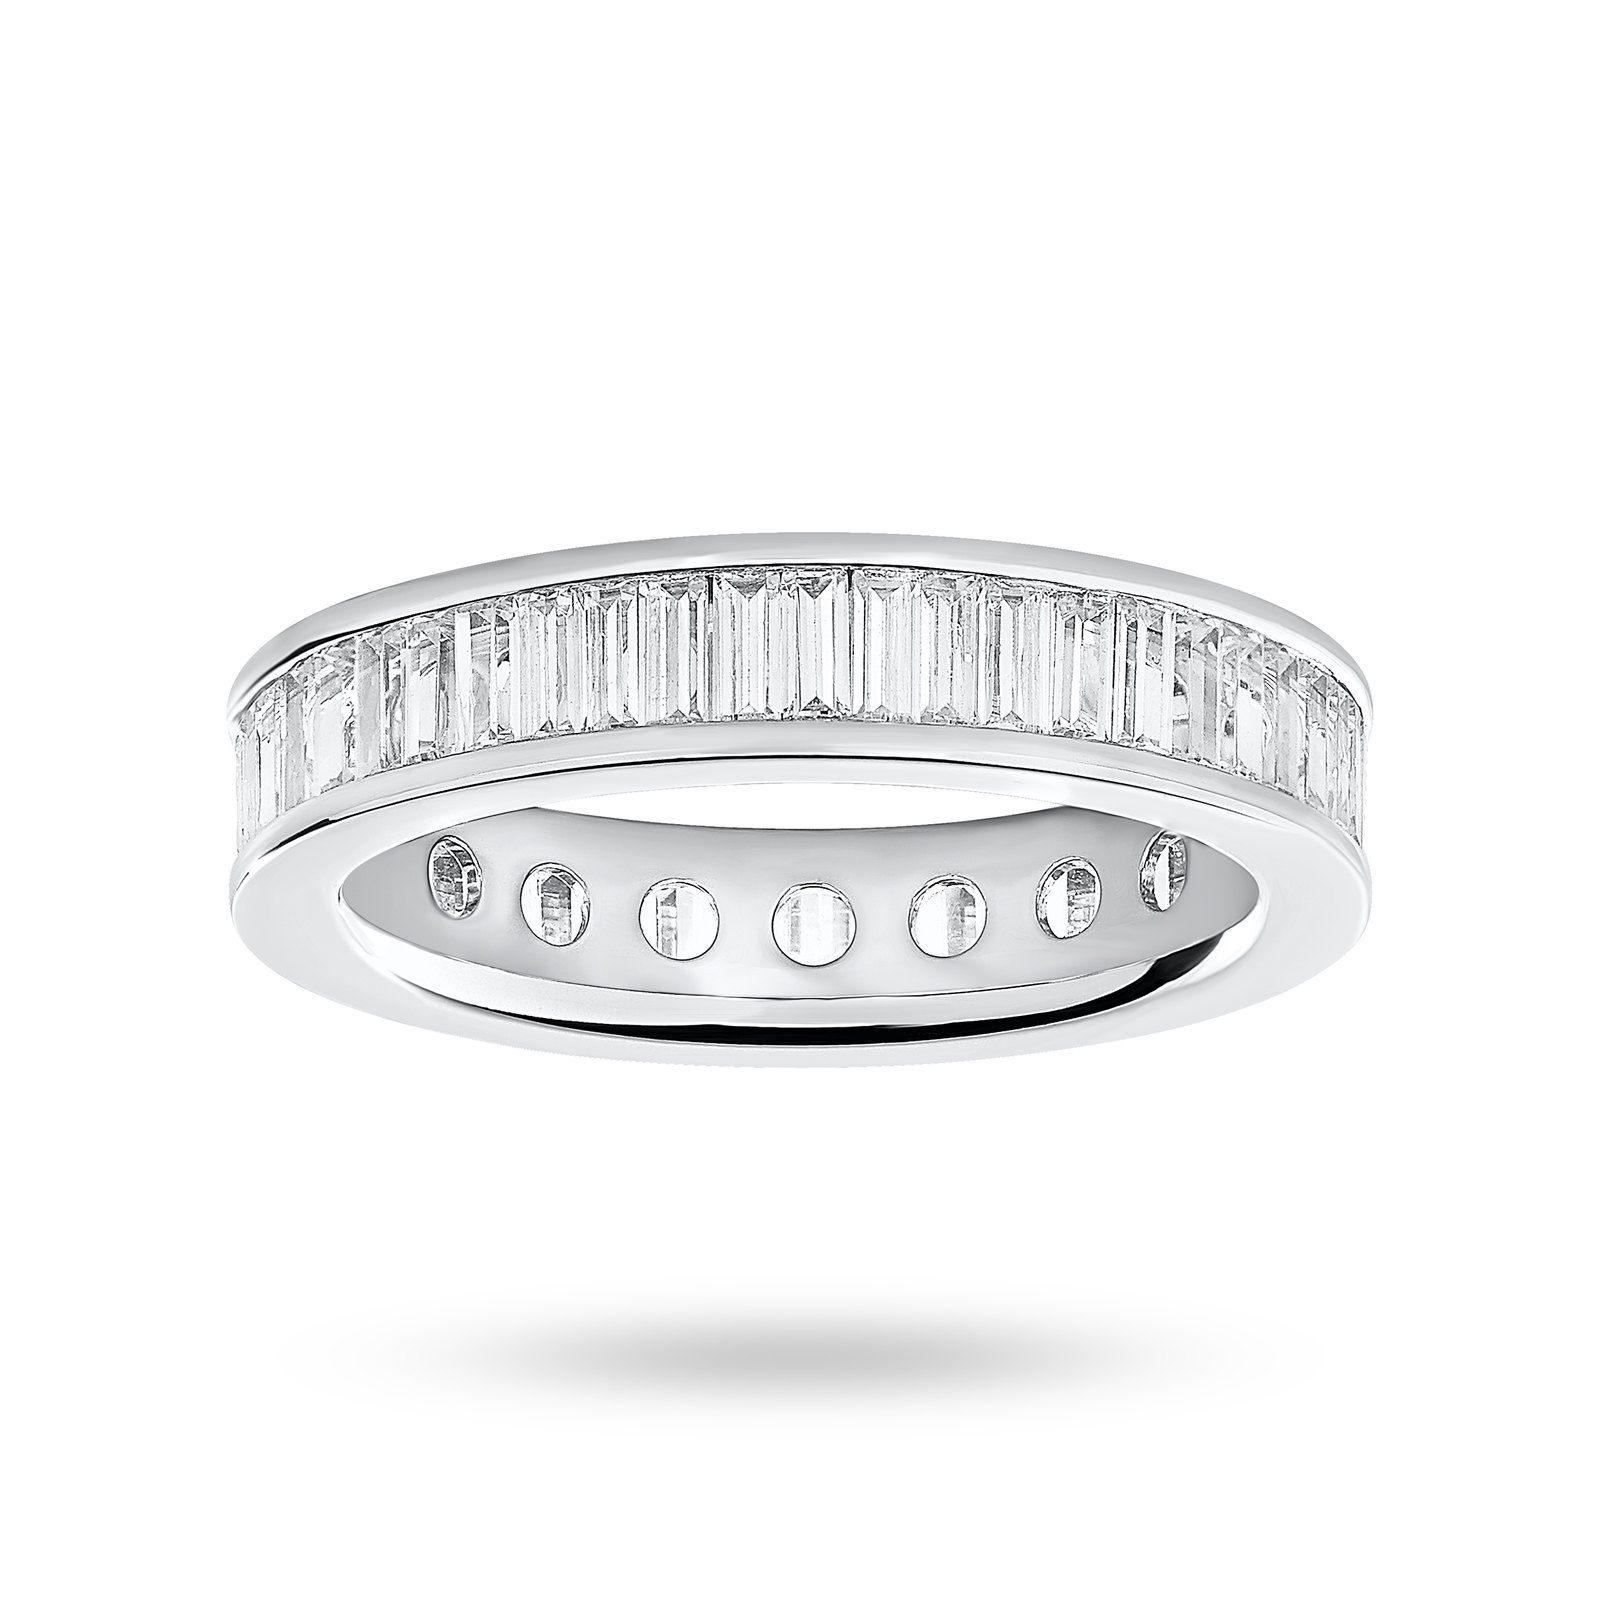 18ct White Gold 2.00cttw Baguette Cut Full Eternity Ring